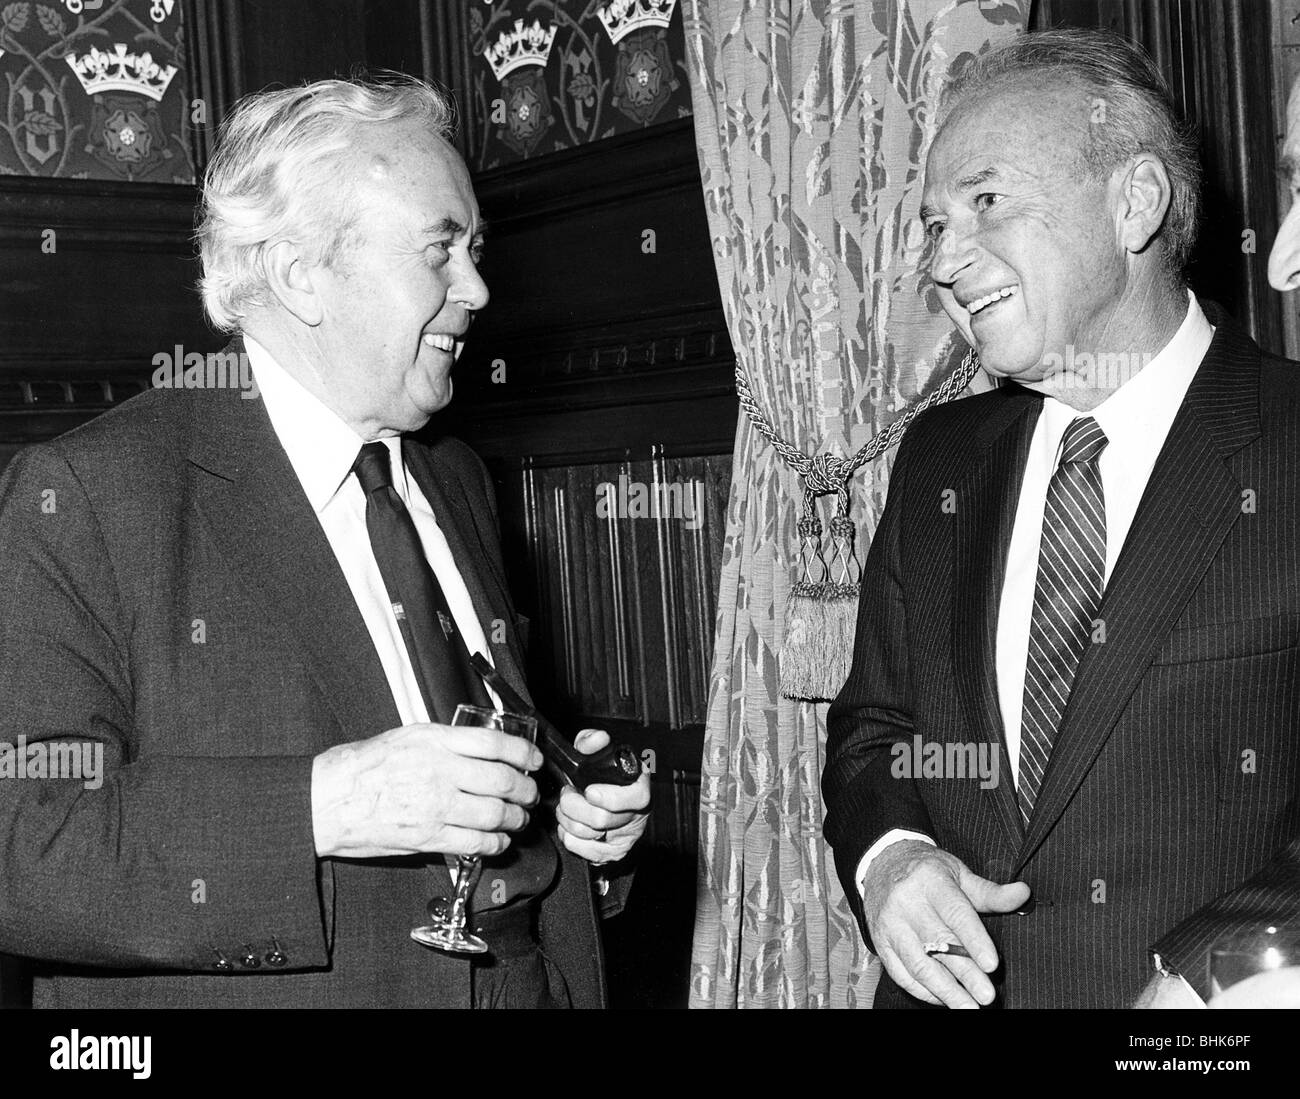 Yitzhak Rabin (1922-1995), Prime Minister of Israel  with Harold Wilson, Former PM of Britian, 1982 Artist: Sidney - Stock Image